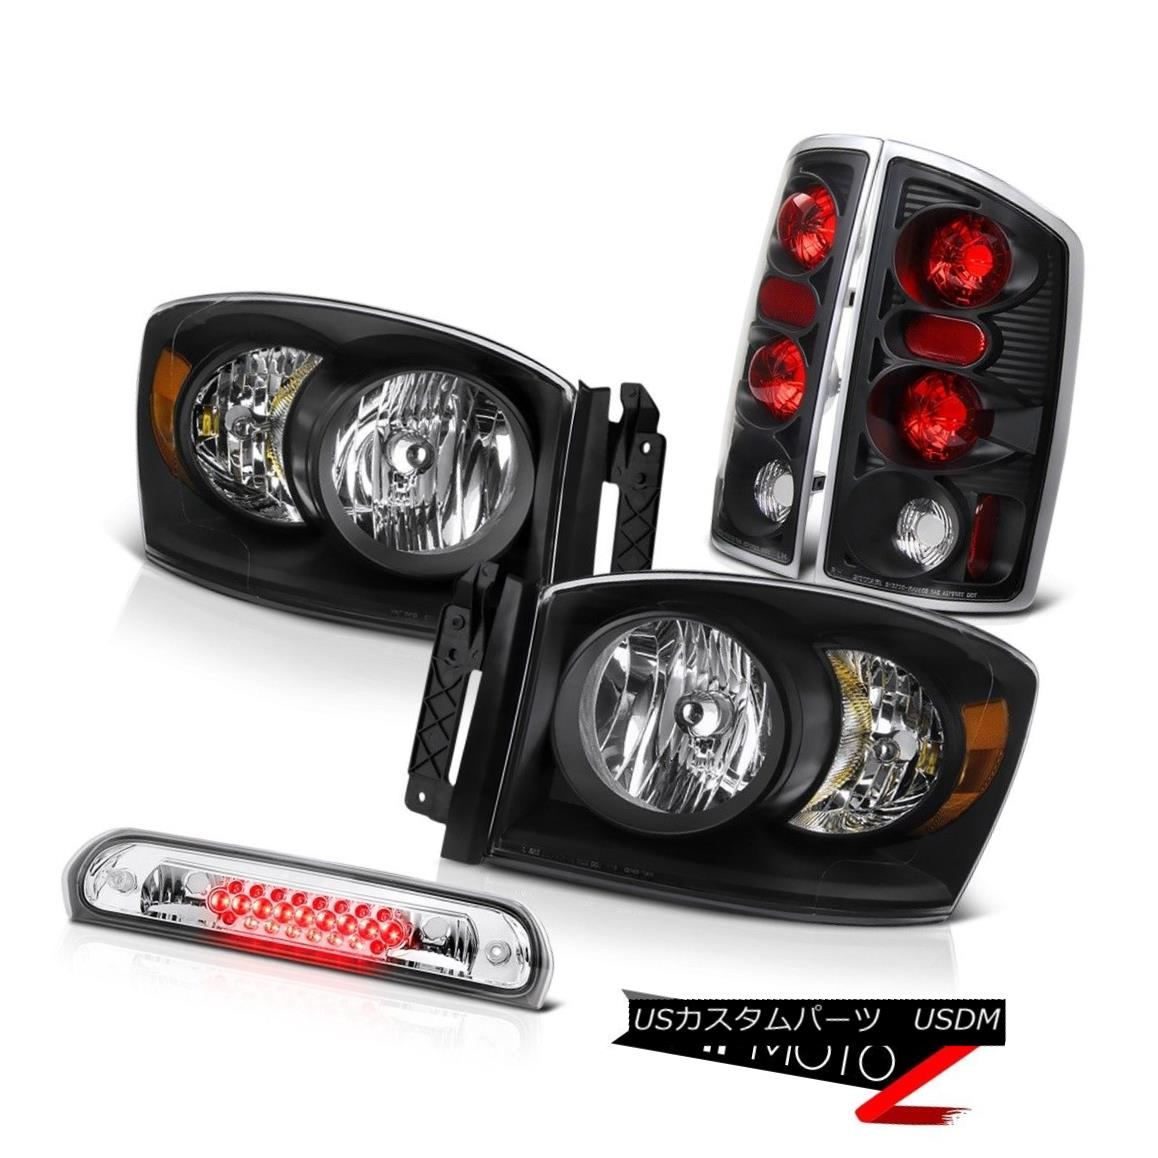 ヘッドライト 2006 Dodge Ram PowerTech Inky Black Headlights Rear Brake Lights Roof Cargo LED 2006 Dodge Ram PowerTech InkyブラックヘッドライトリアブレーキライトRoof Cargo LED